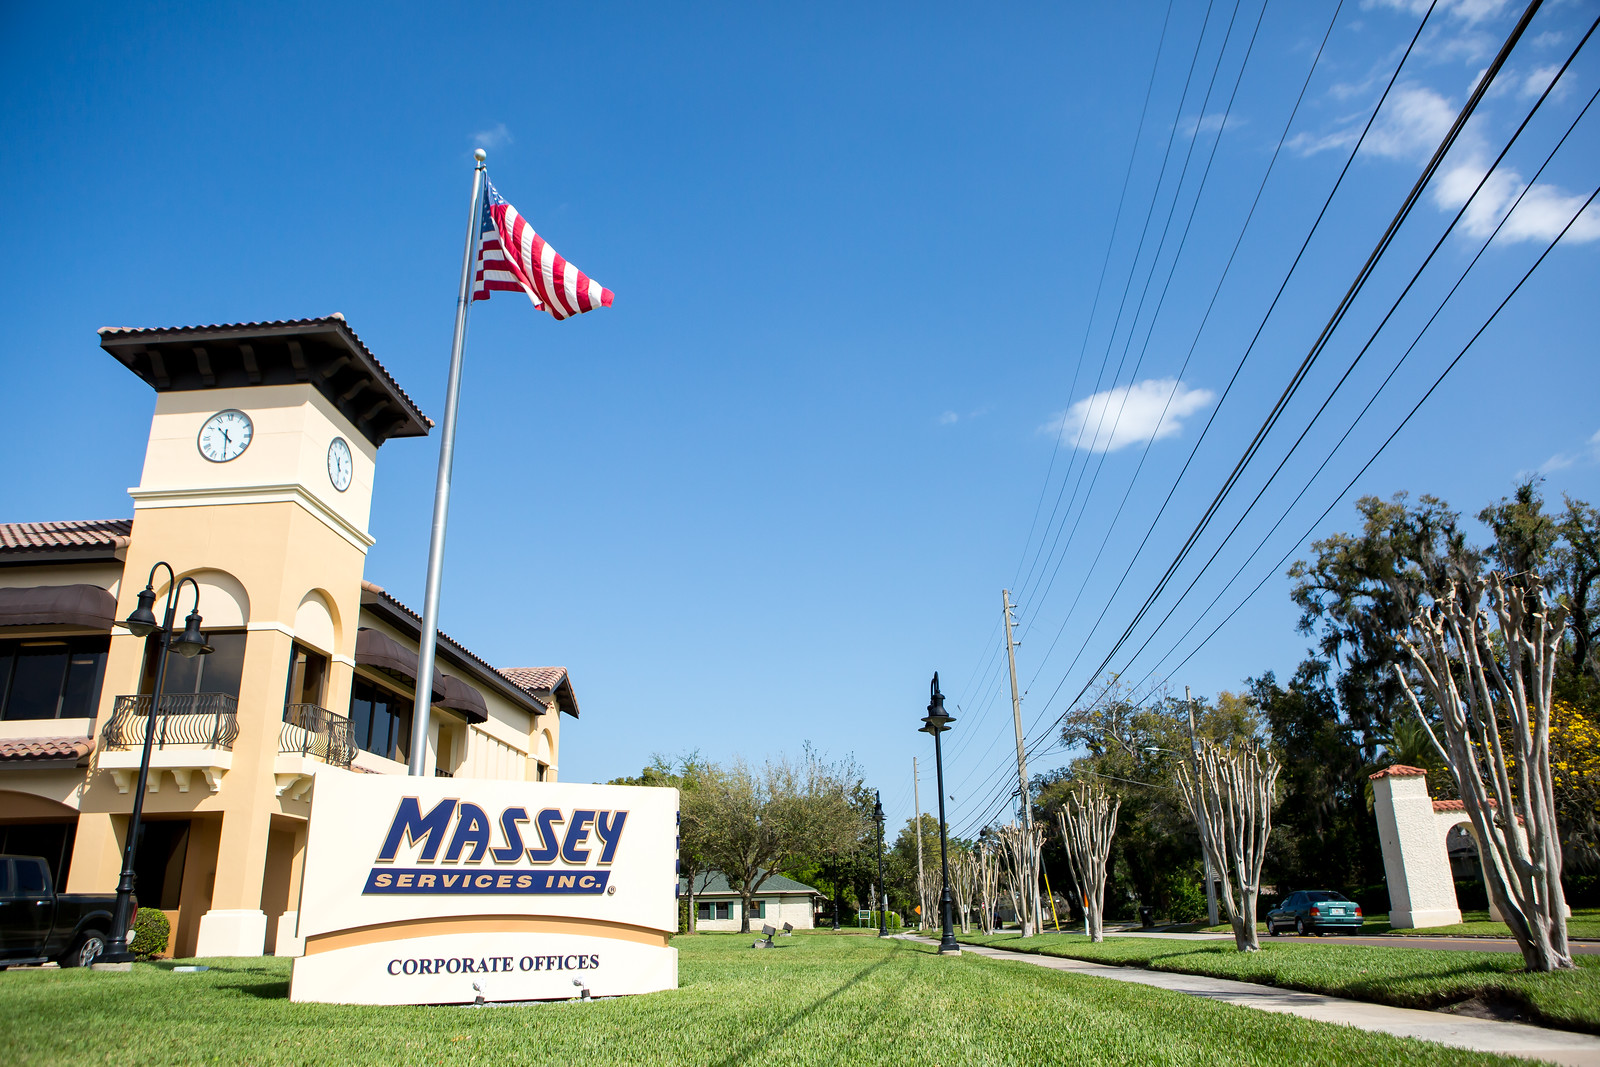 Massey Services Corporate Headquarters